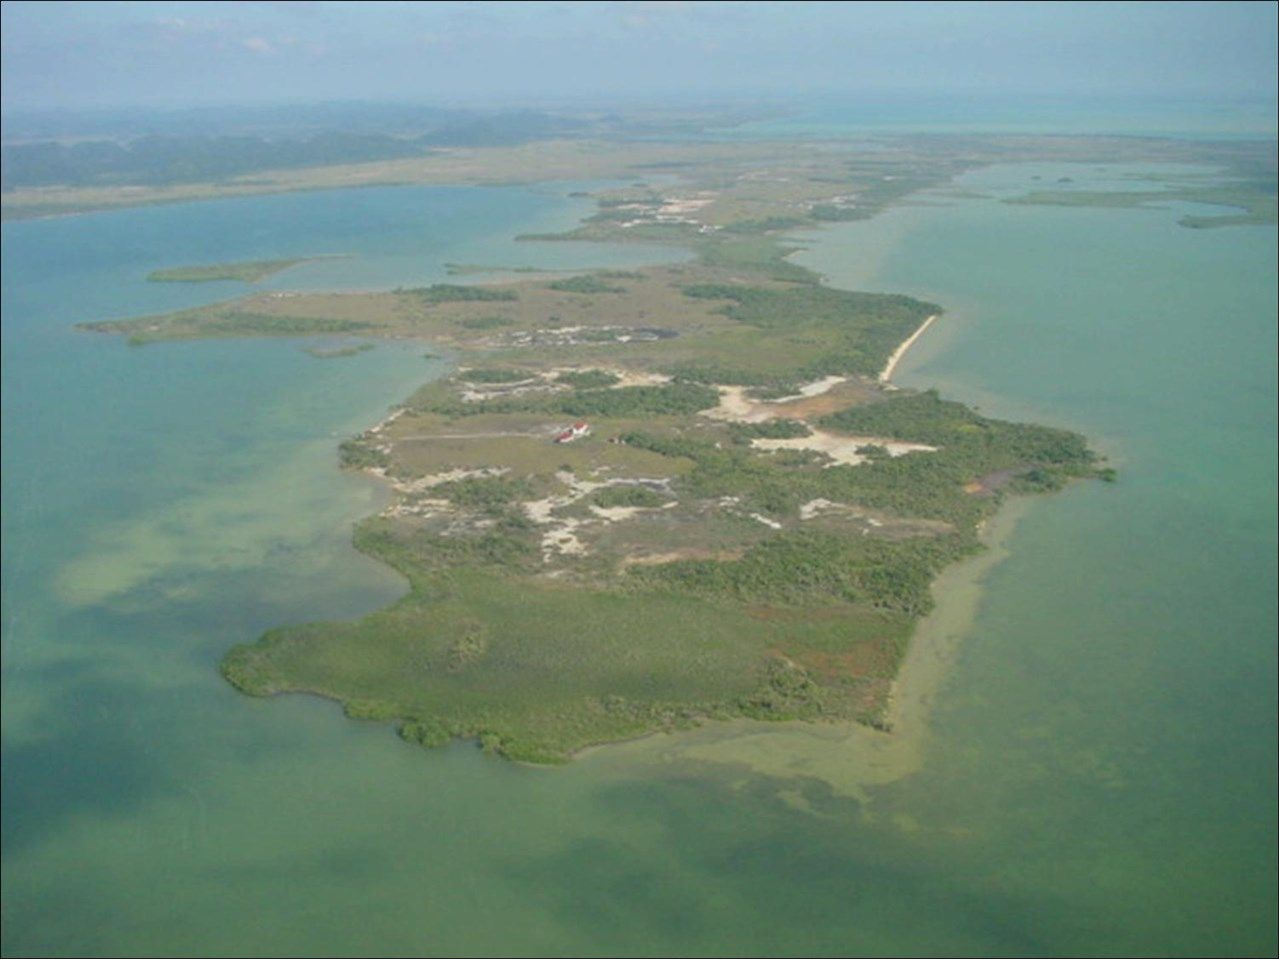 Tiger Point Aerial View